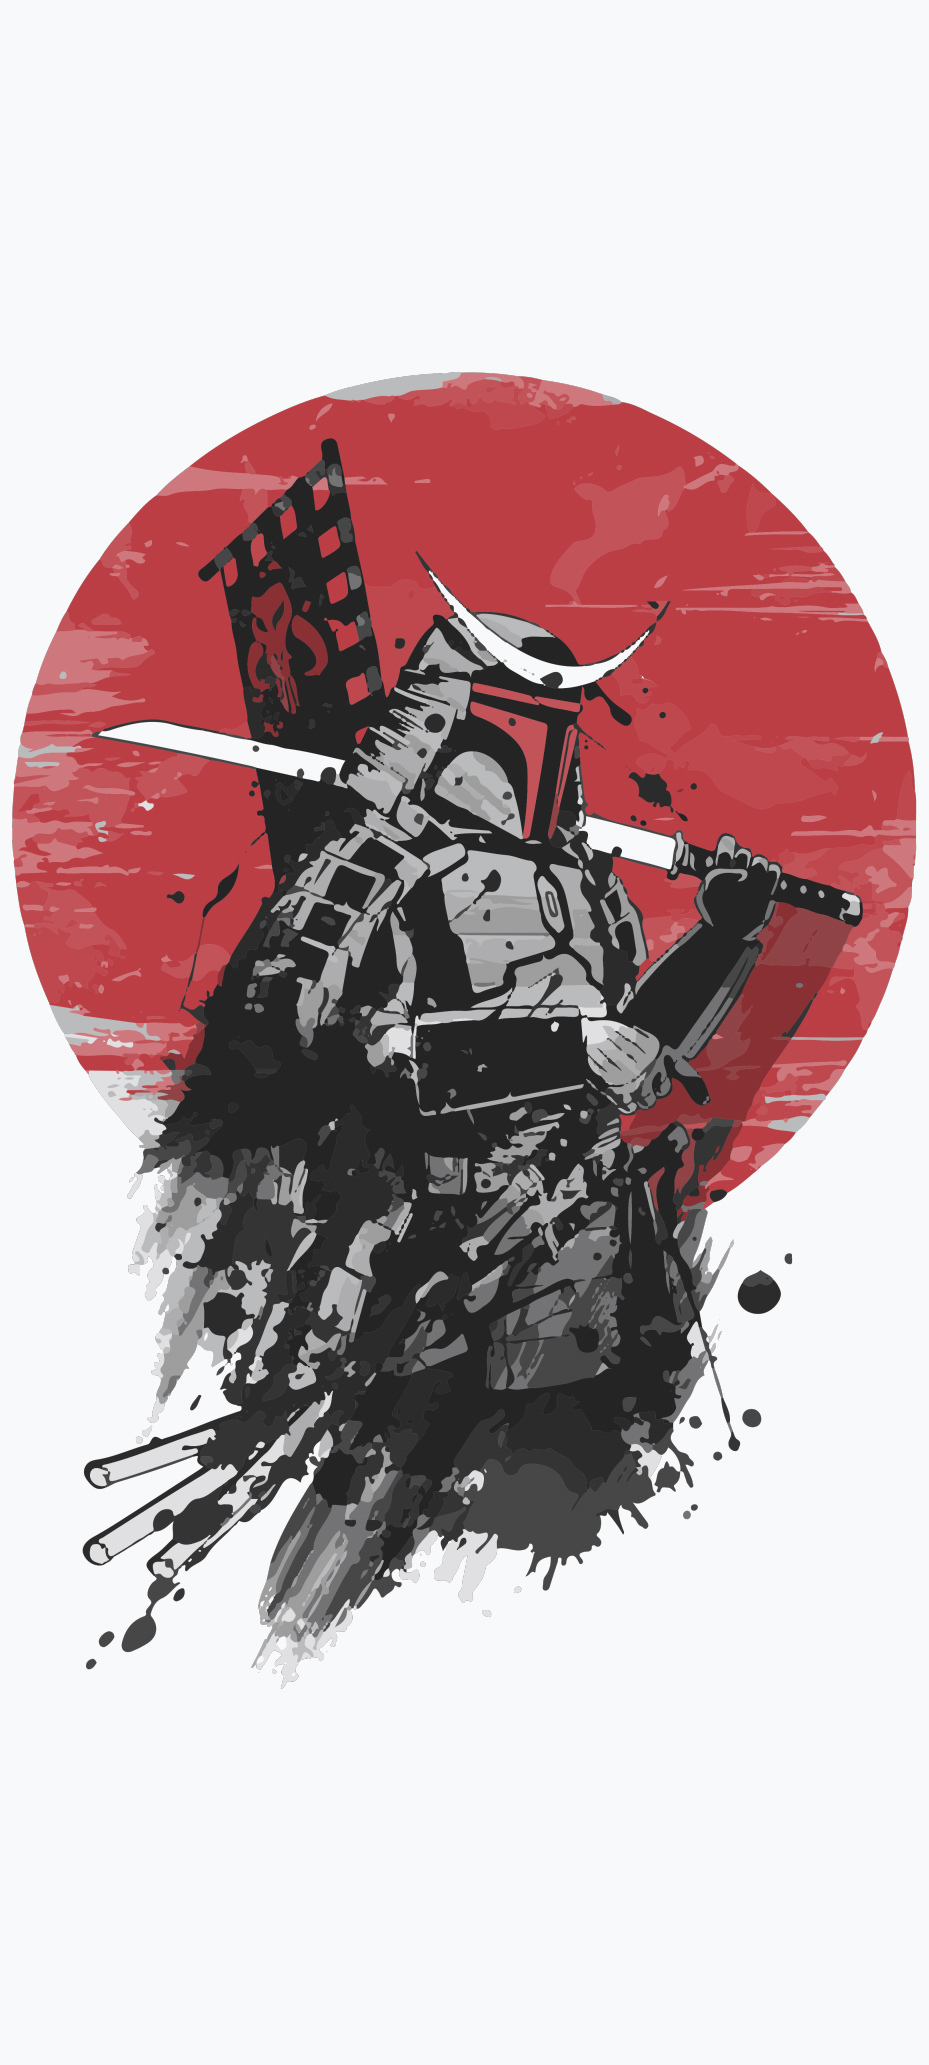 Iphone Wallpaper Samurai Heroscreen Cool Wallpapers